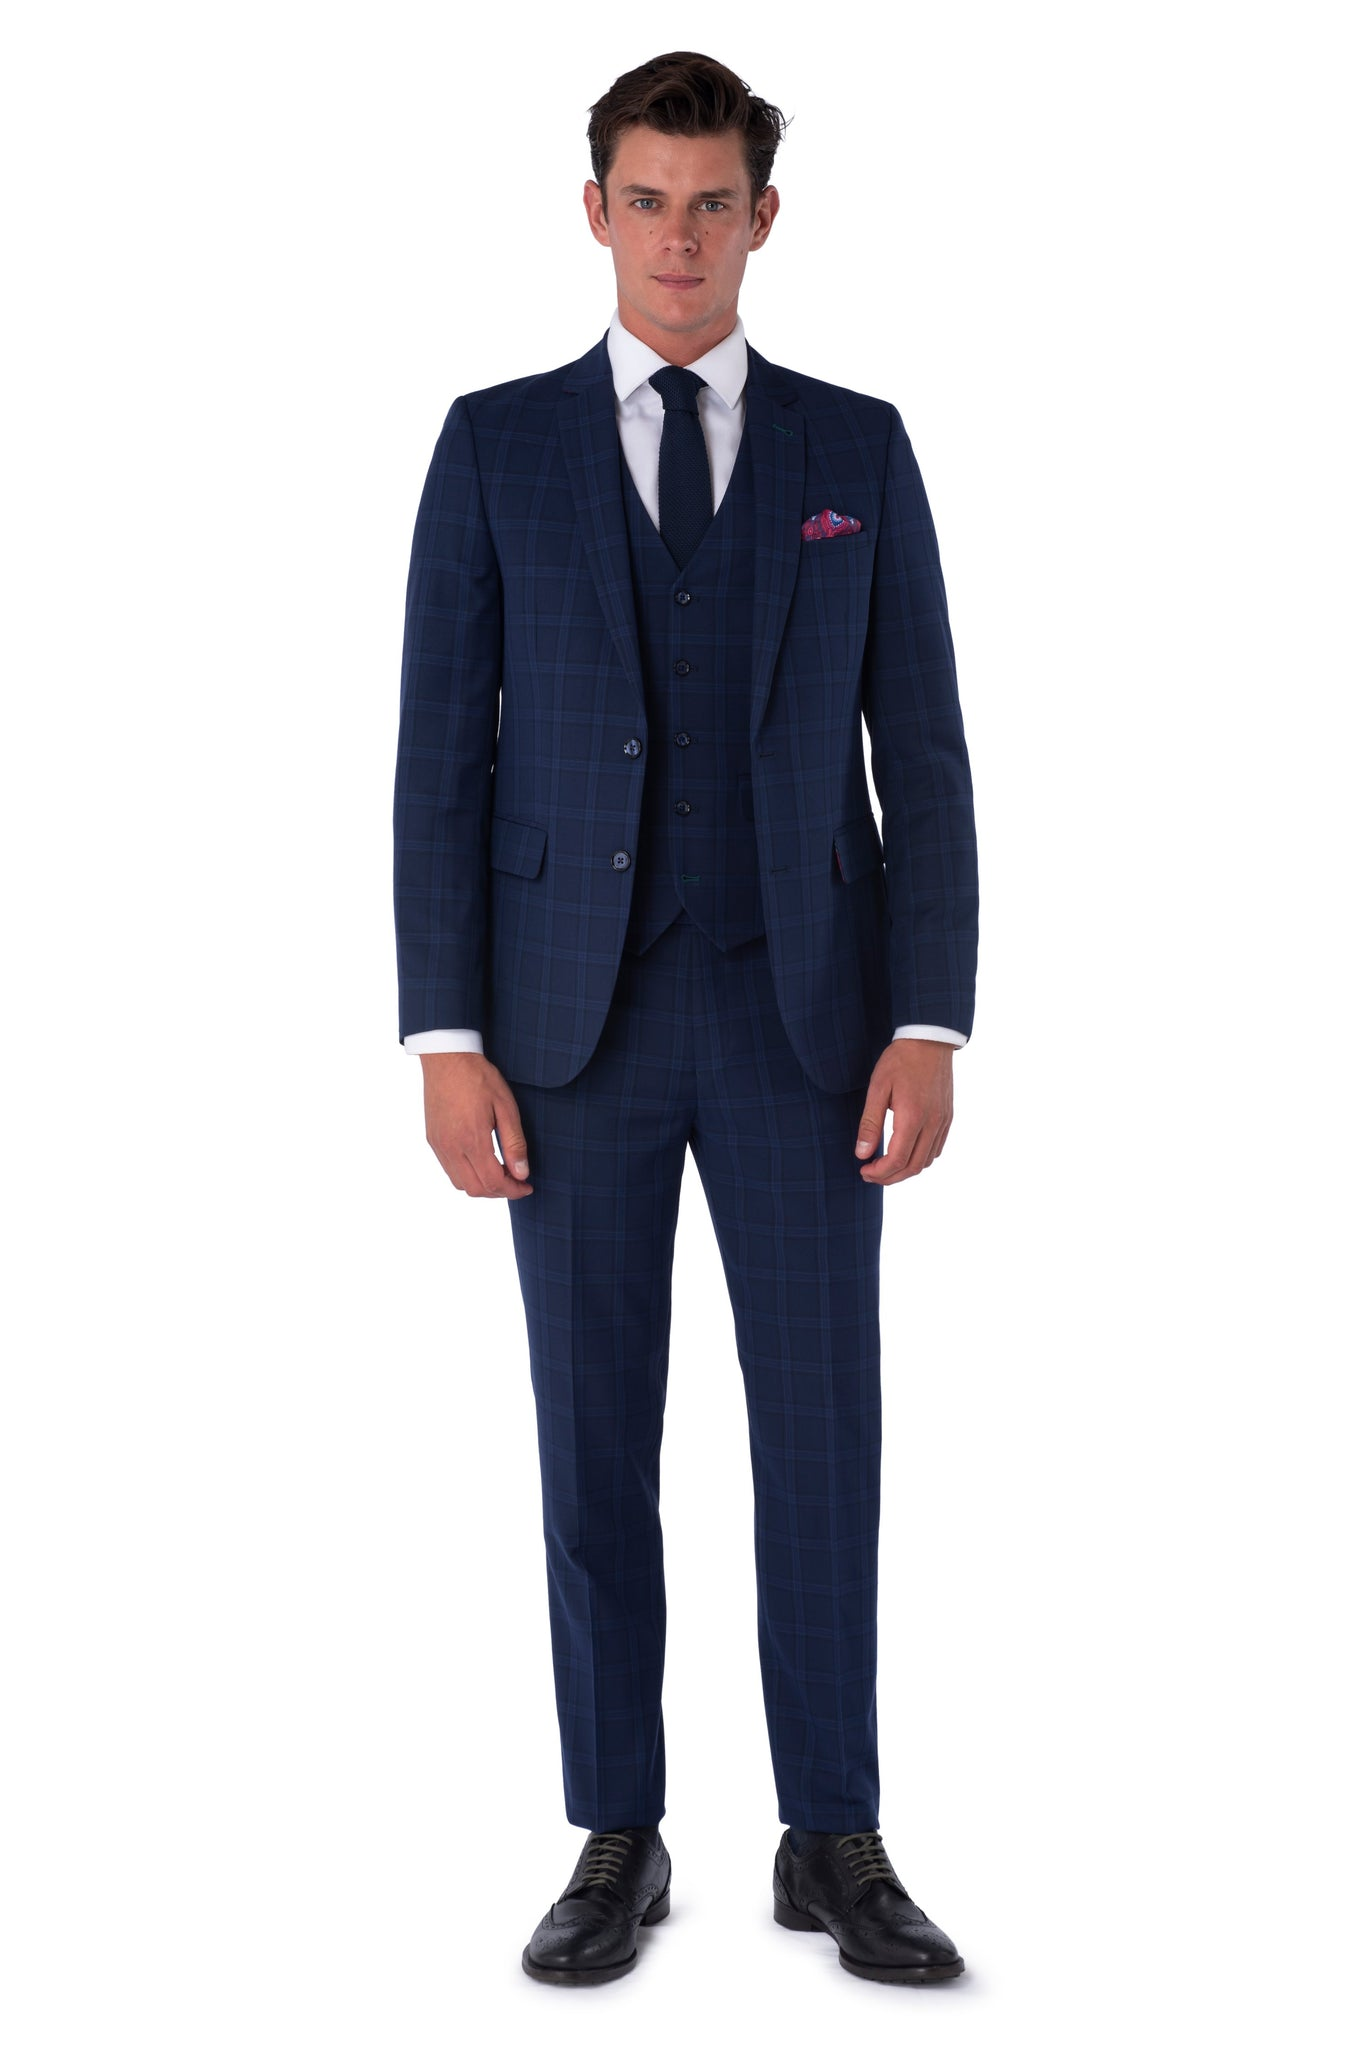 Front of JACOB Navy Blue Check Three Piece Slim Fit Suit